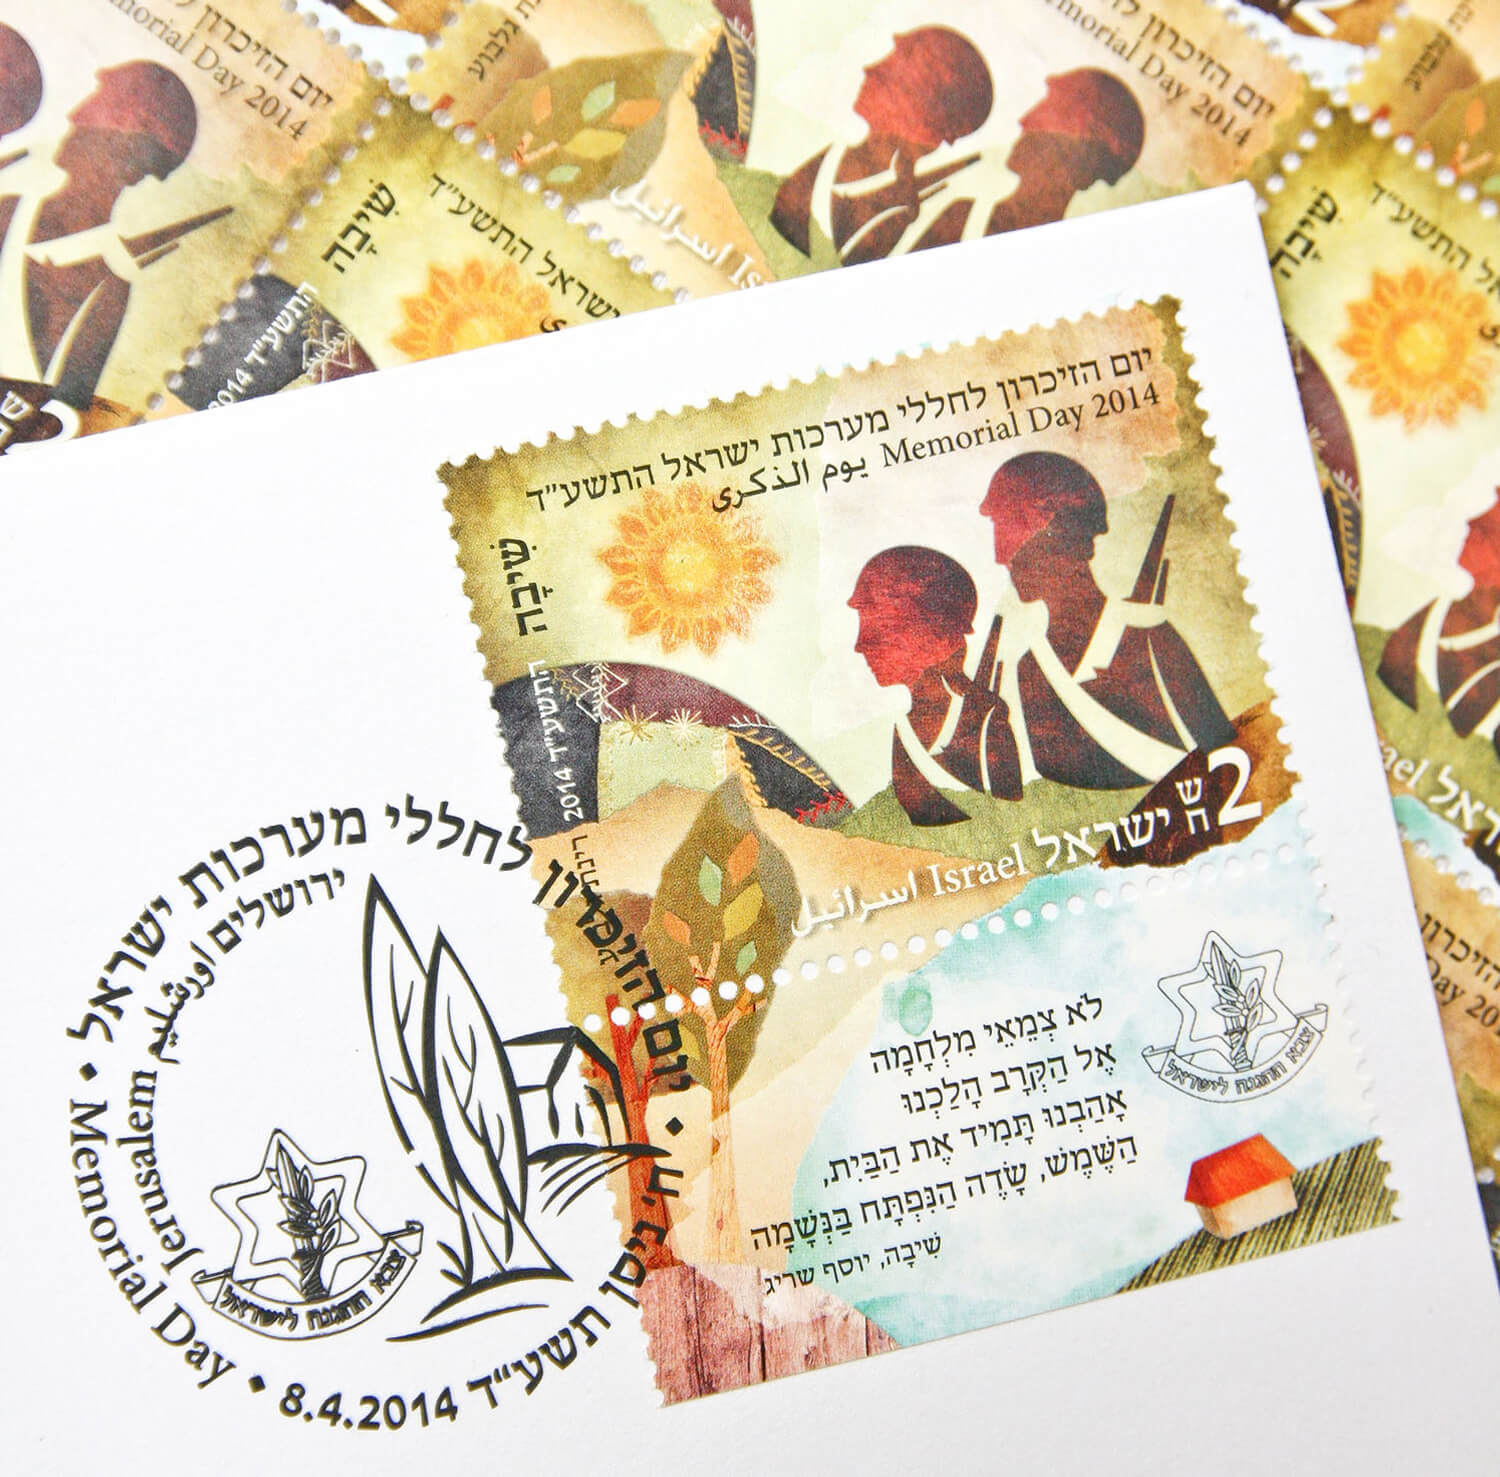 An Israeli Memory – Memorial Day Postage Stamps